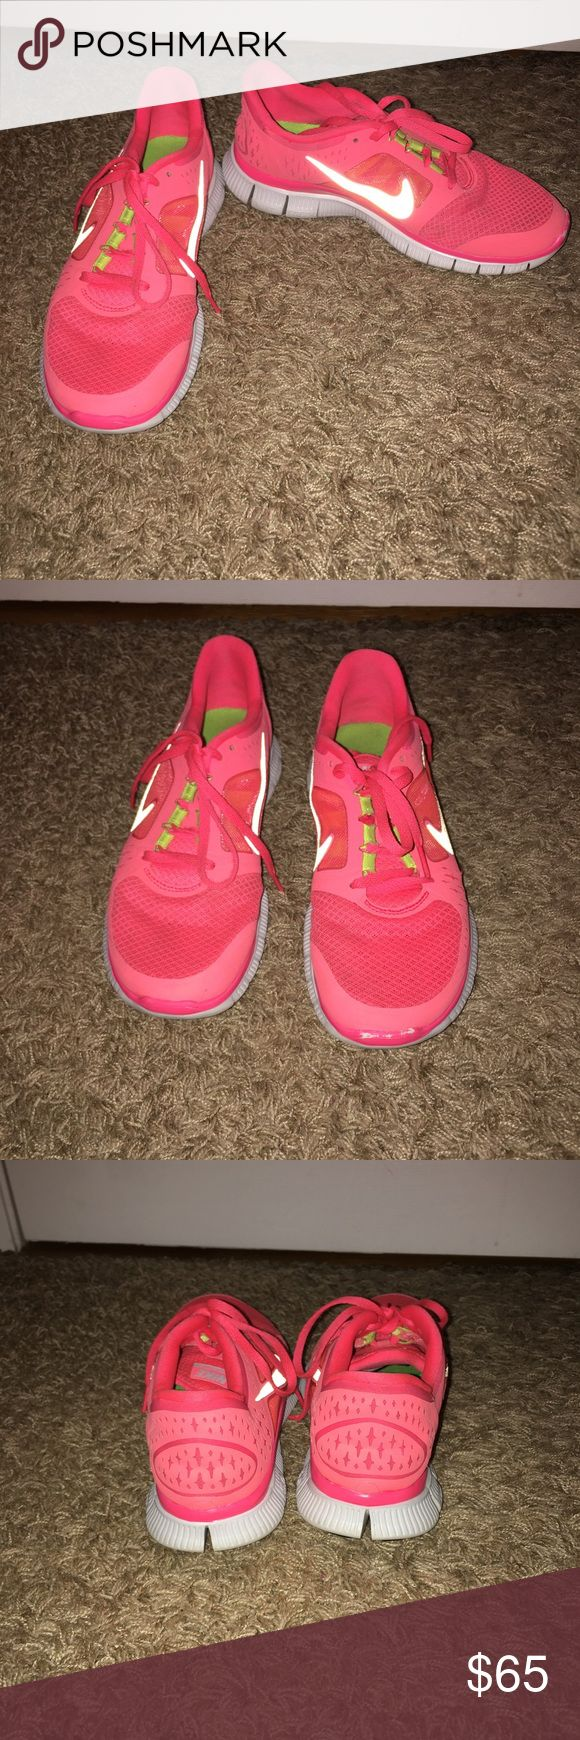 Nike free runs $65 OBO Women's 7.5 only thing wrong is scuff on the one shoe Nike Shoes Athletic Shoes